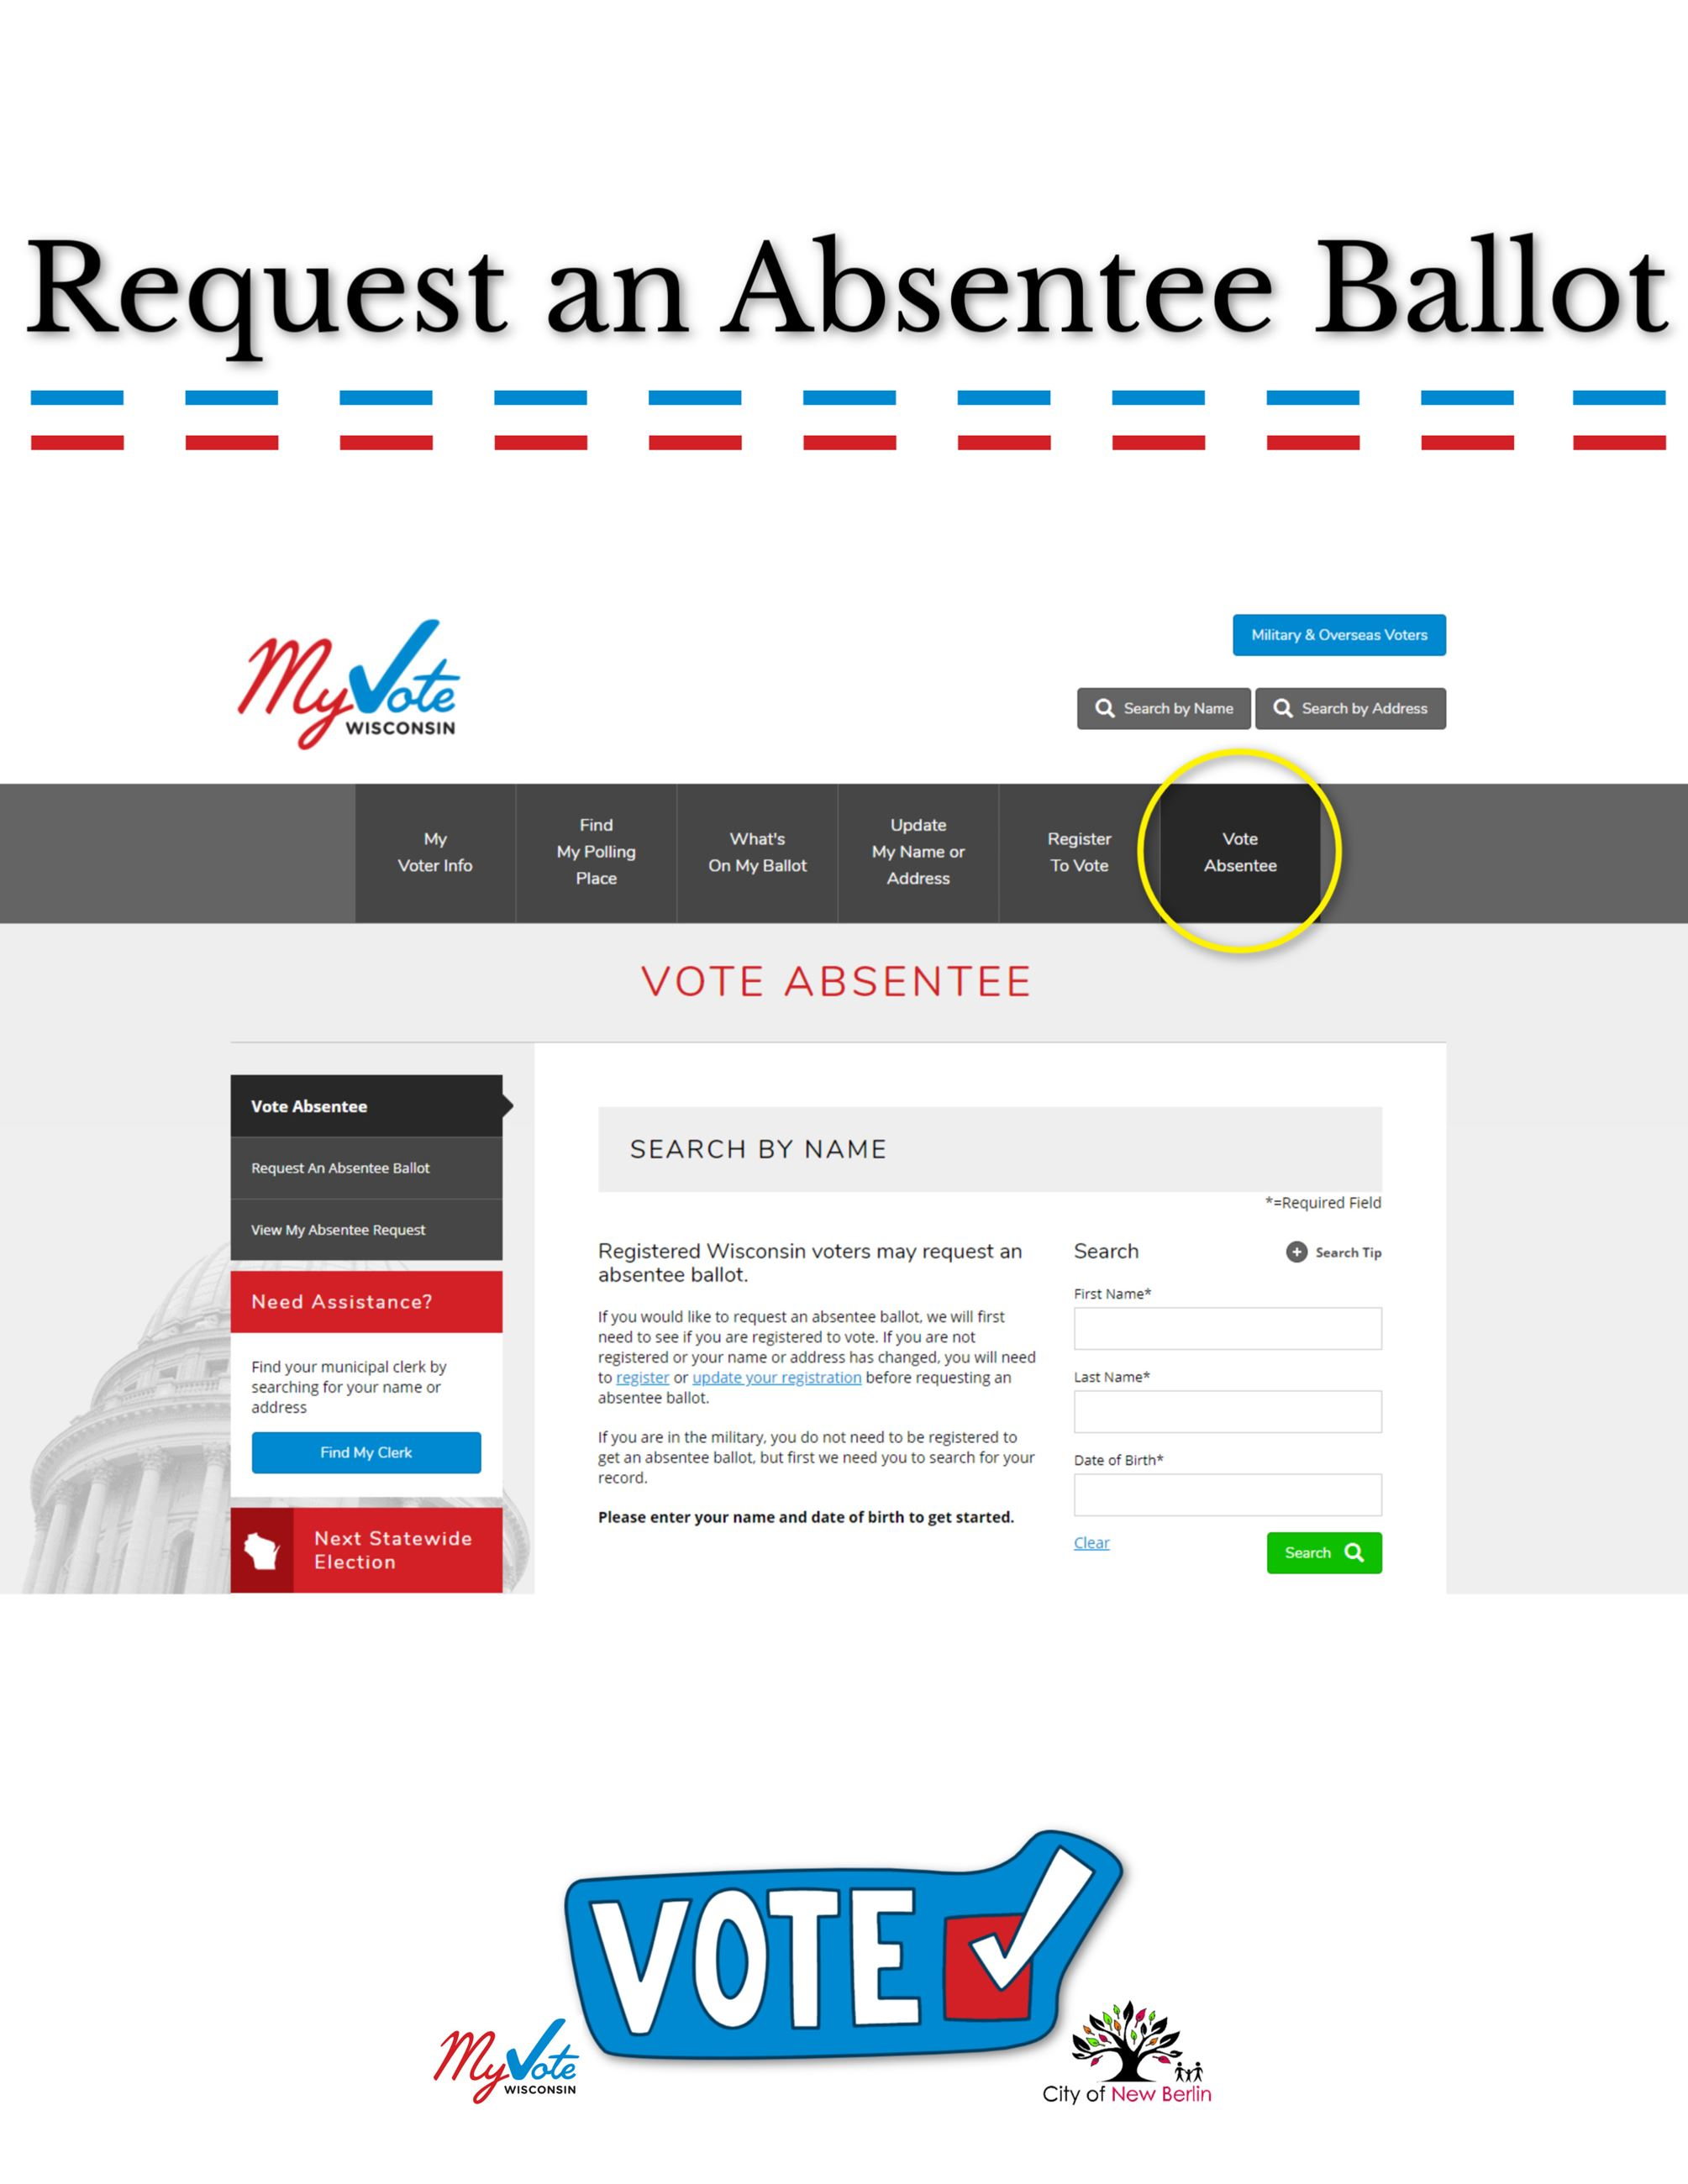 Request an Absentee Ballot